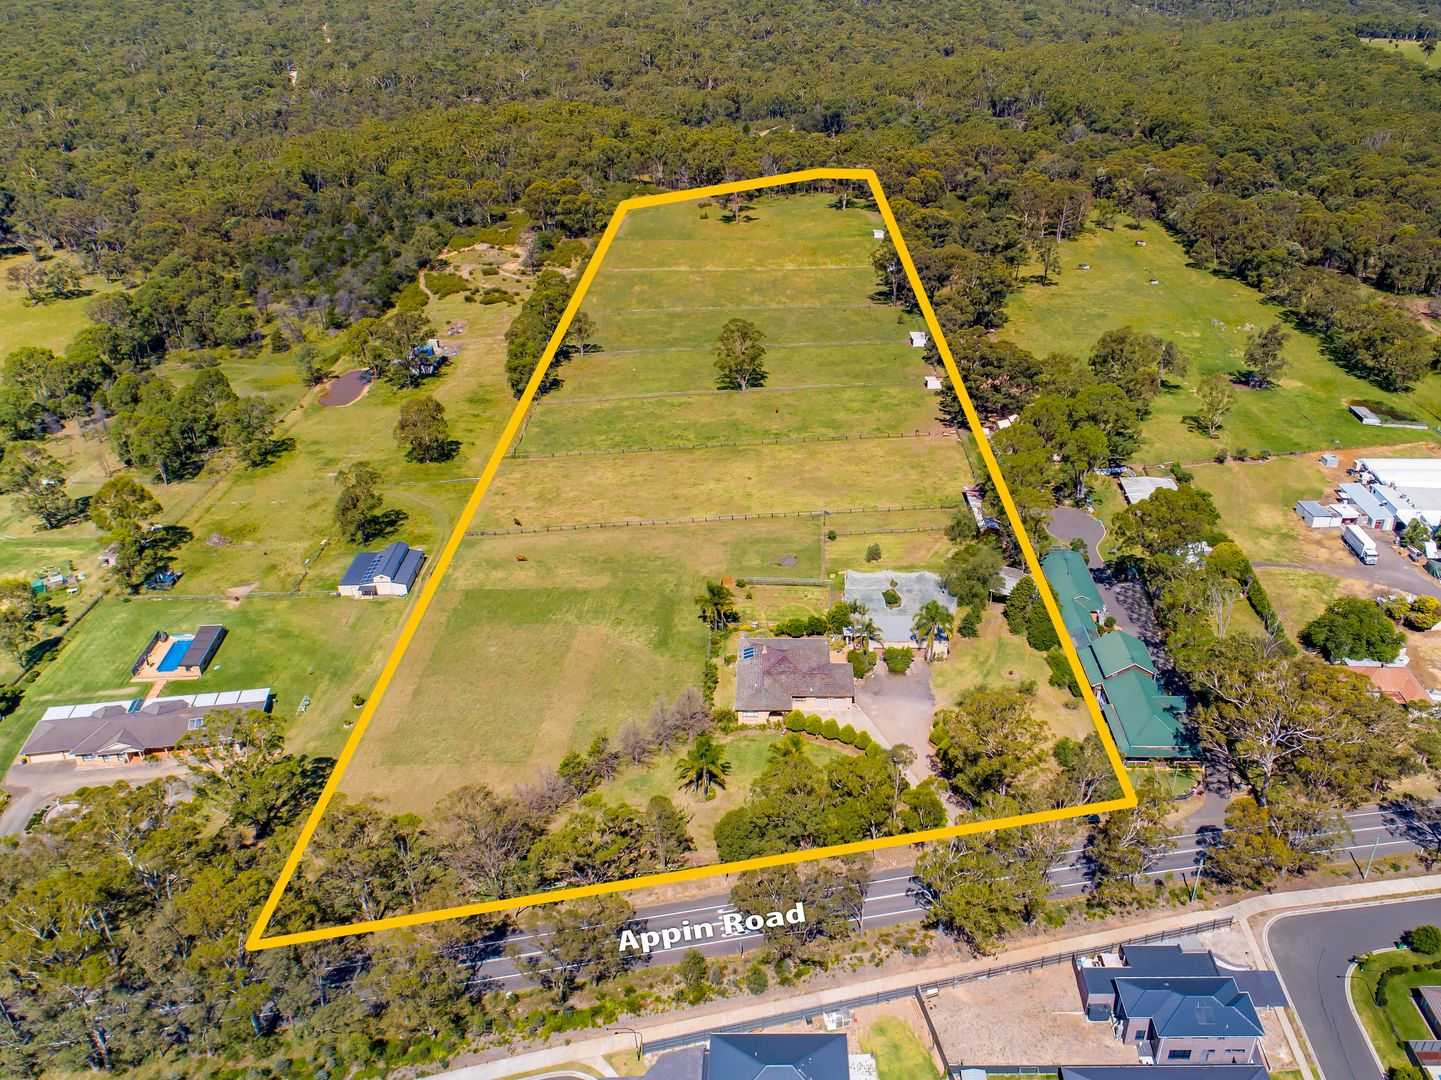 240 Appin Road, Appin NSW 2560, Image 0